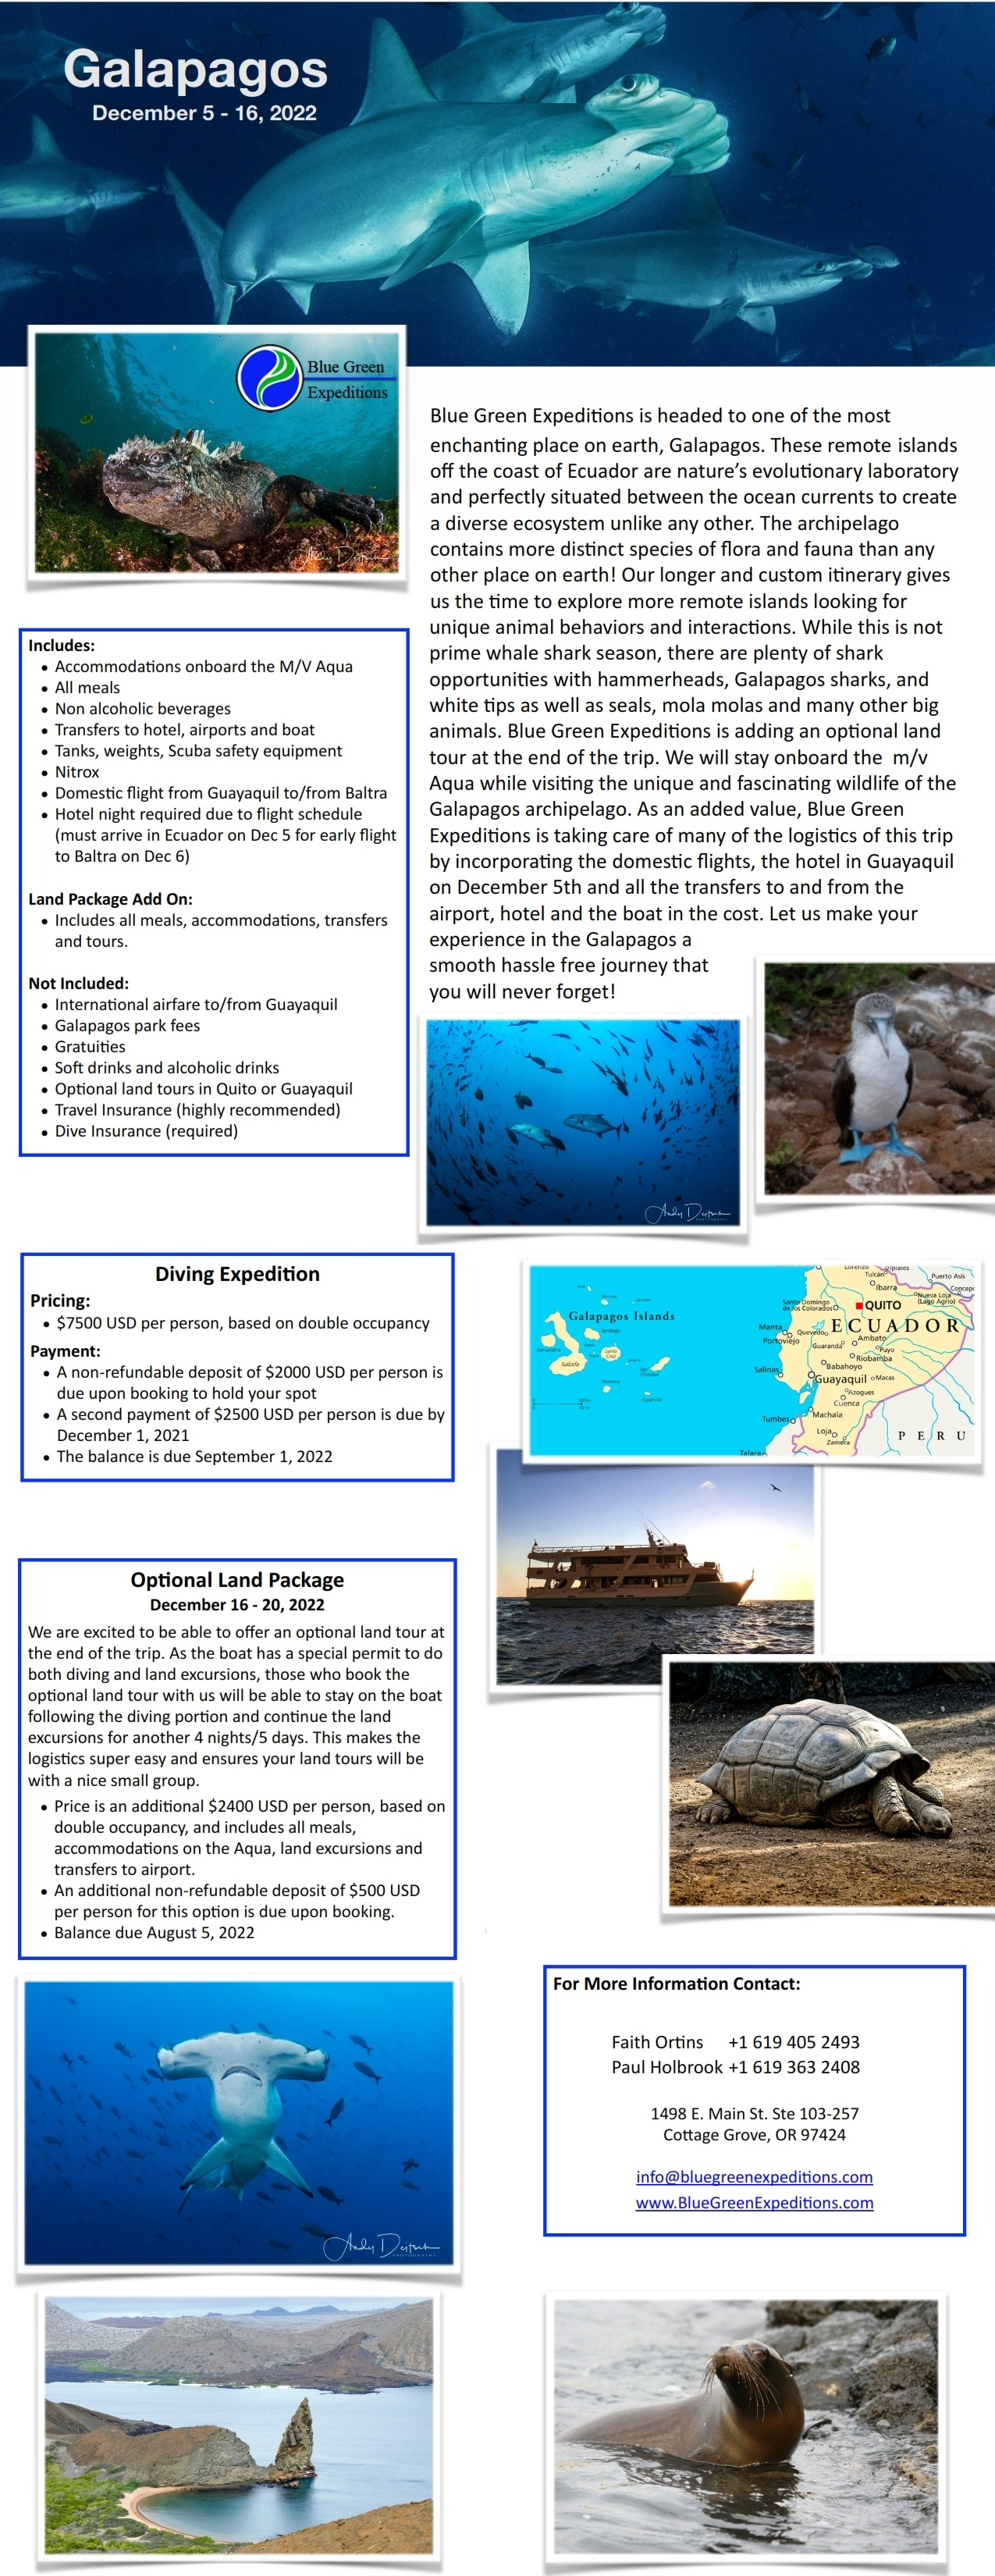 Galapagos, December 5 - 16, 2022, trip itinerary and pricing. Same information is available in the expedition flyer PDF.